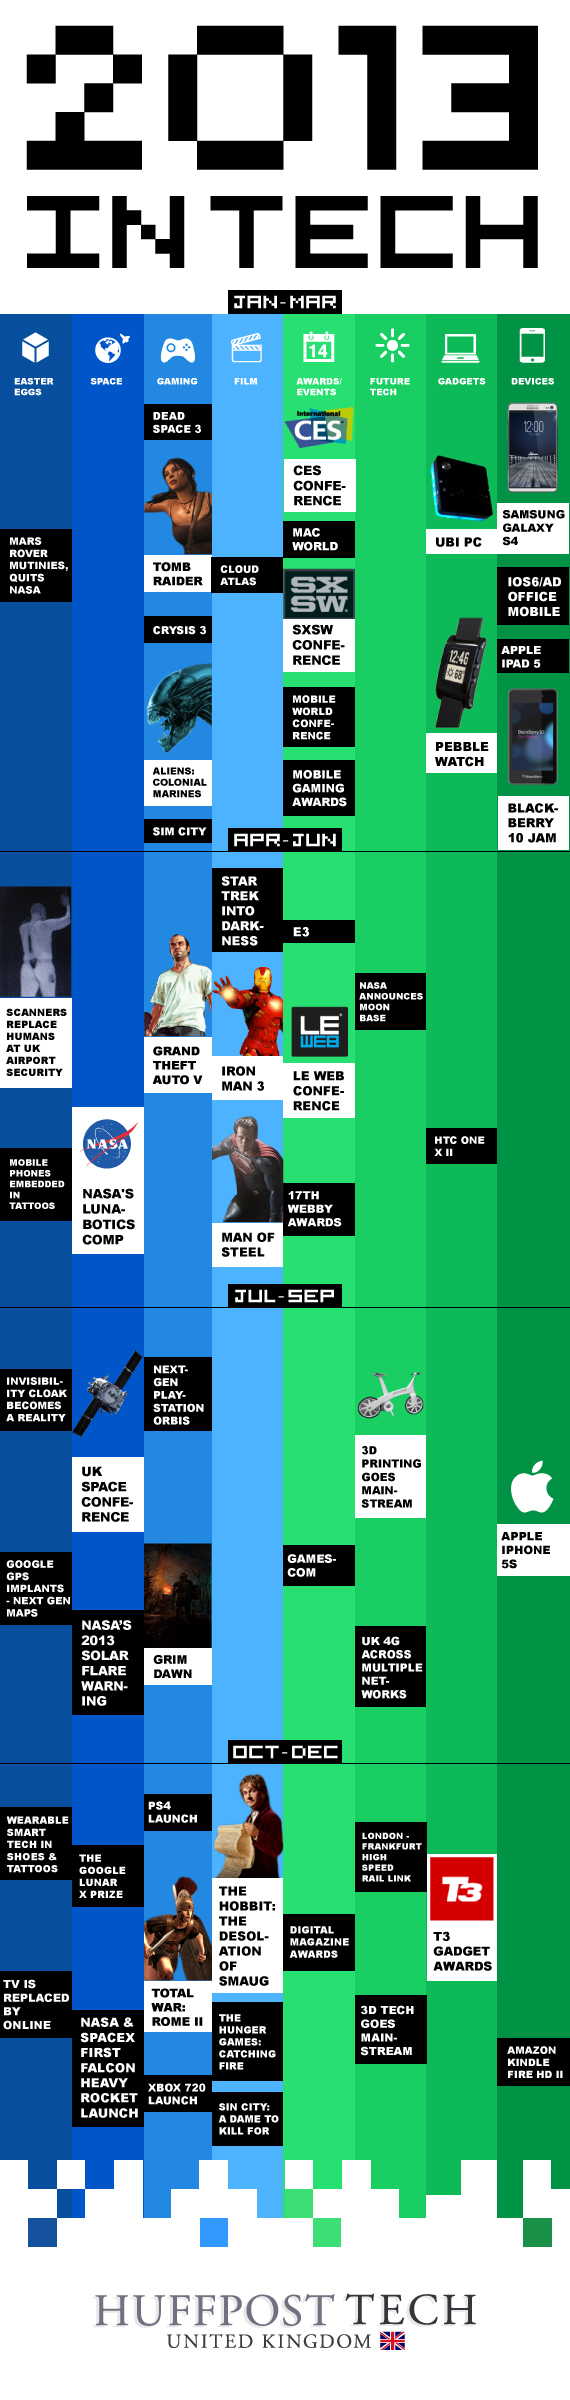 Tech 2013 Calendar by Huffington Post